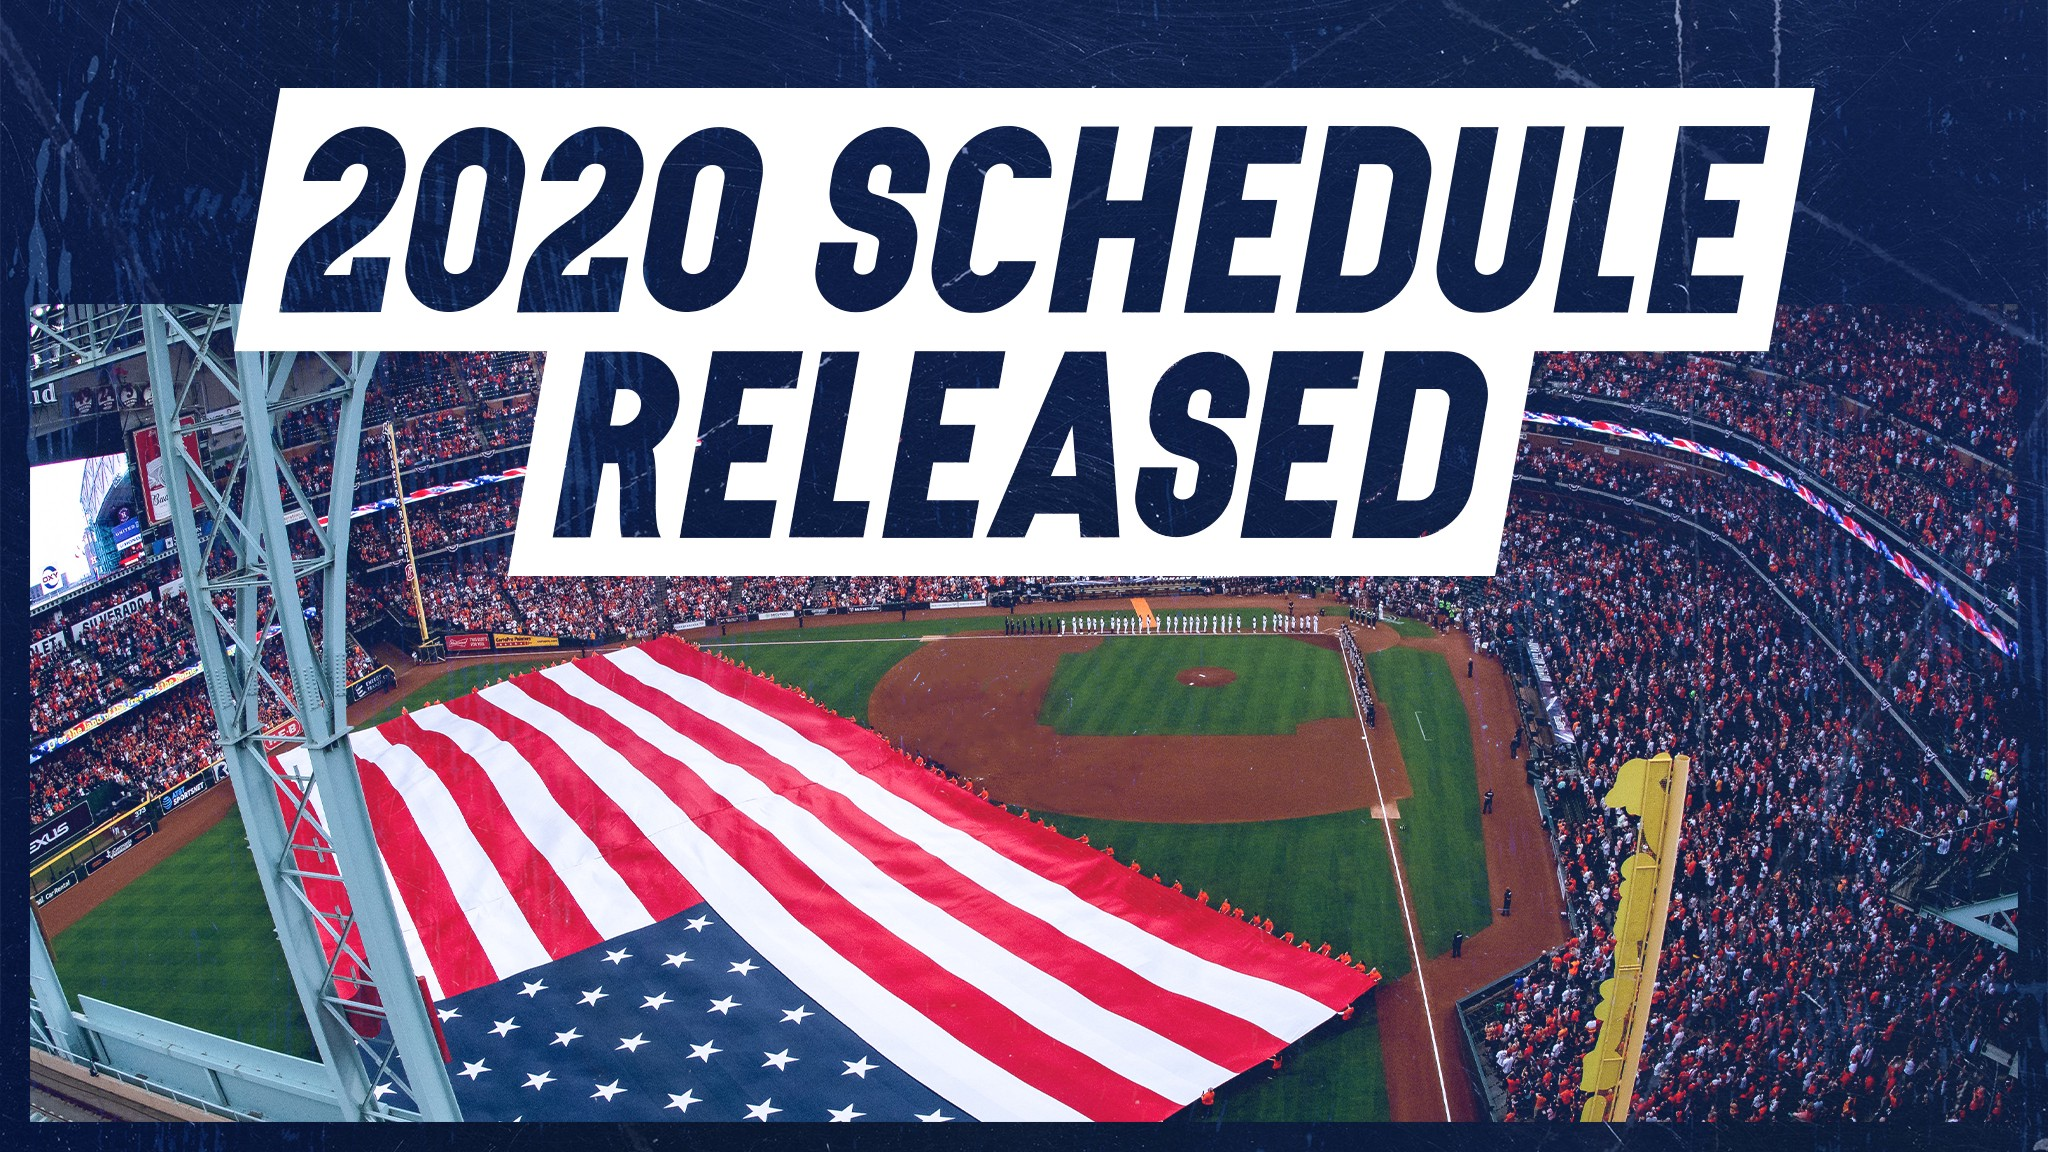 image regarding Astros Schedule Printable named Astros launch 2020 regular monthly time agenda - Astros Mission